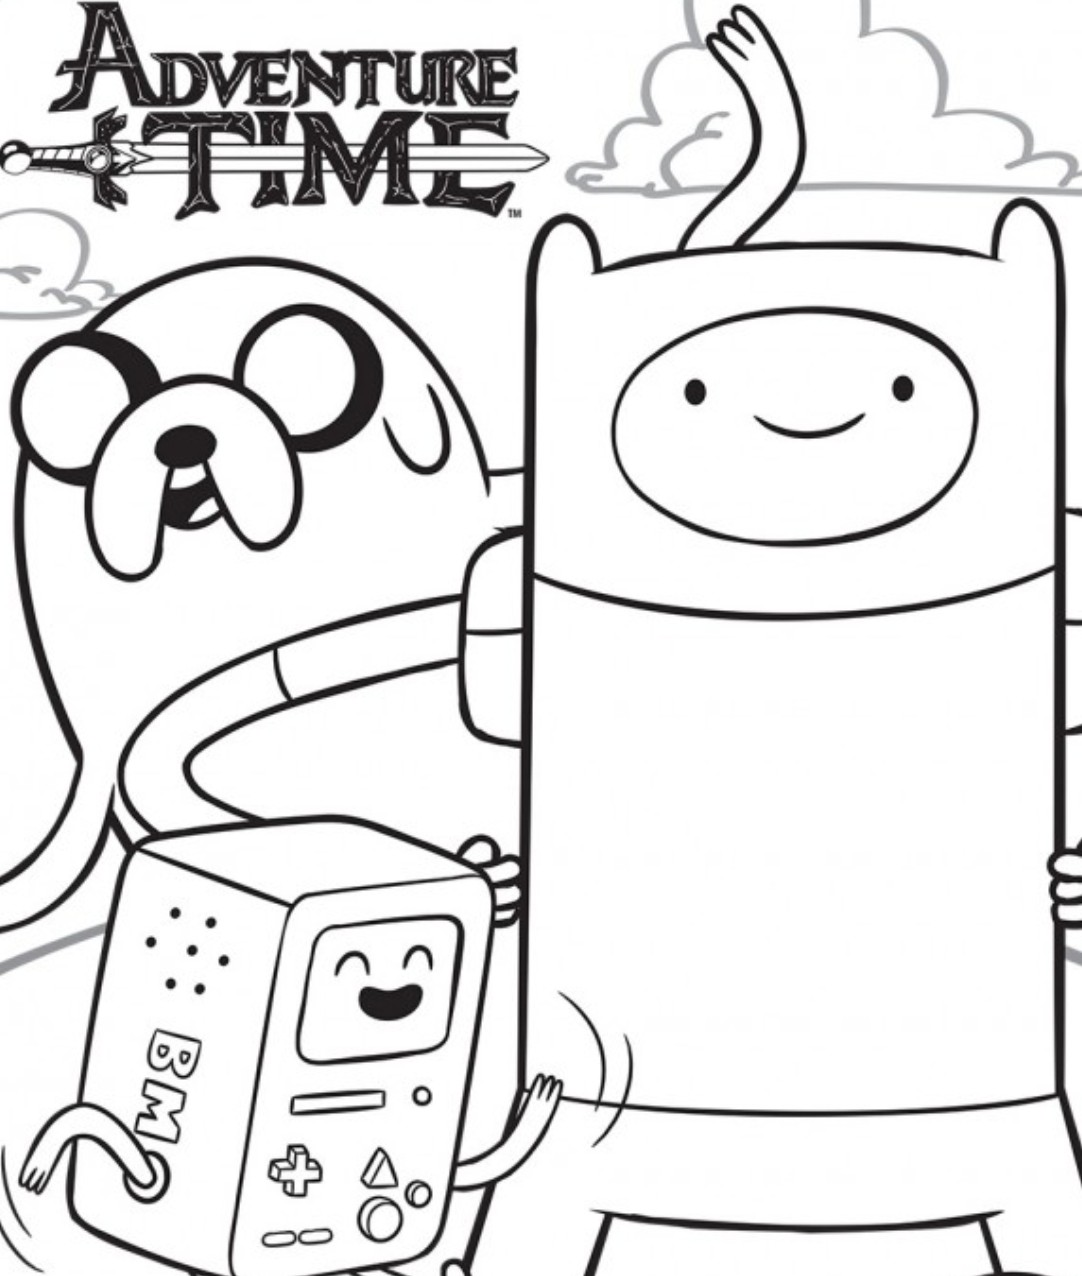 Adventure Time Coloring Pages Only Coloring Pages Adventure Time Coloring Pages Printable